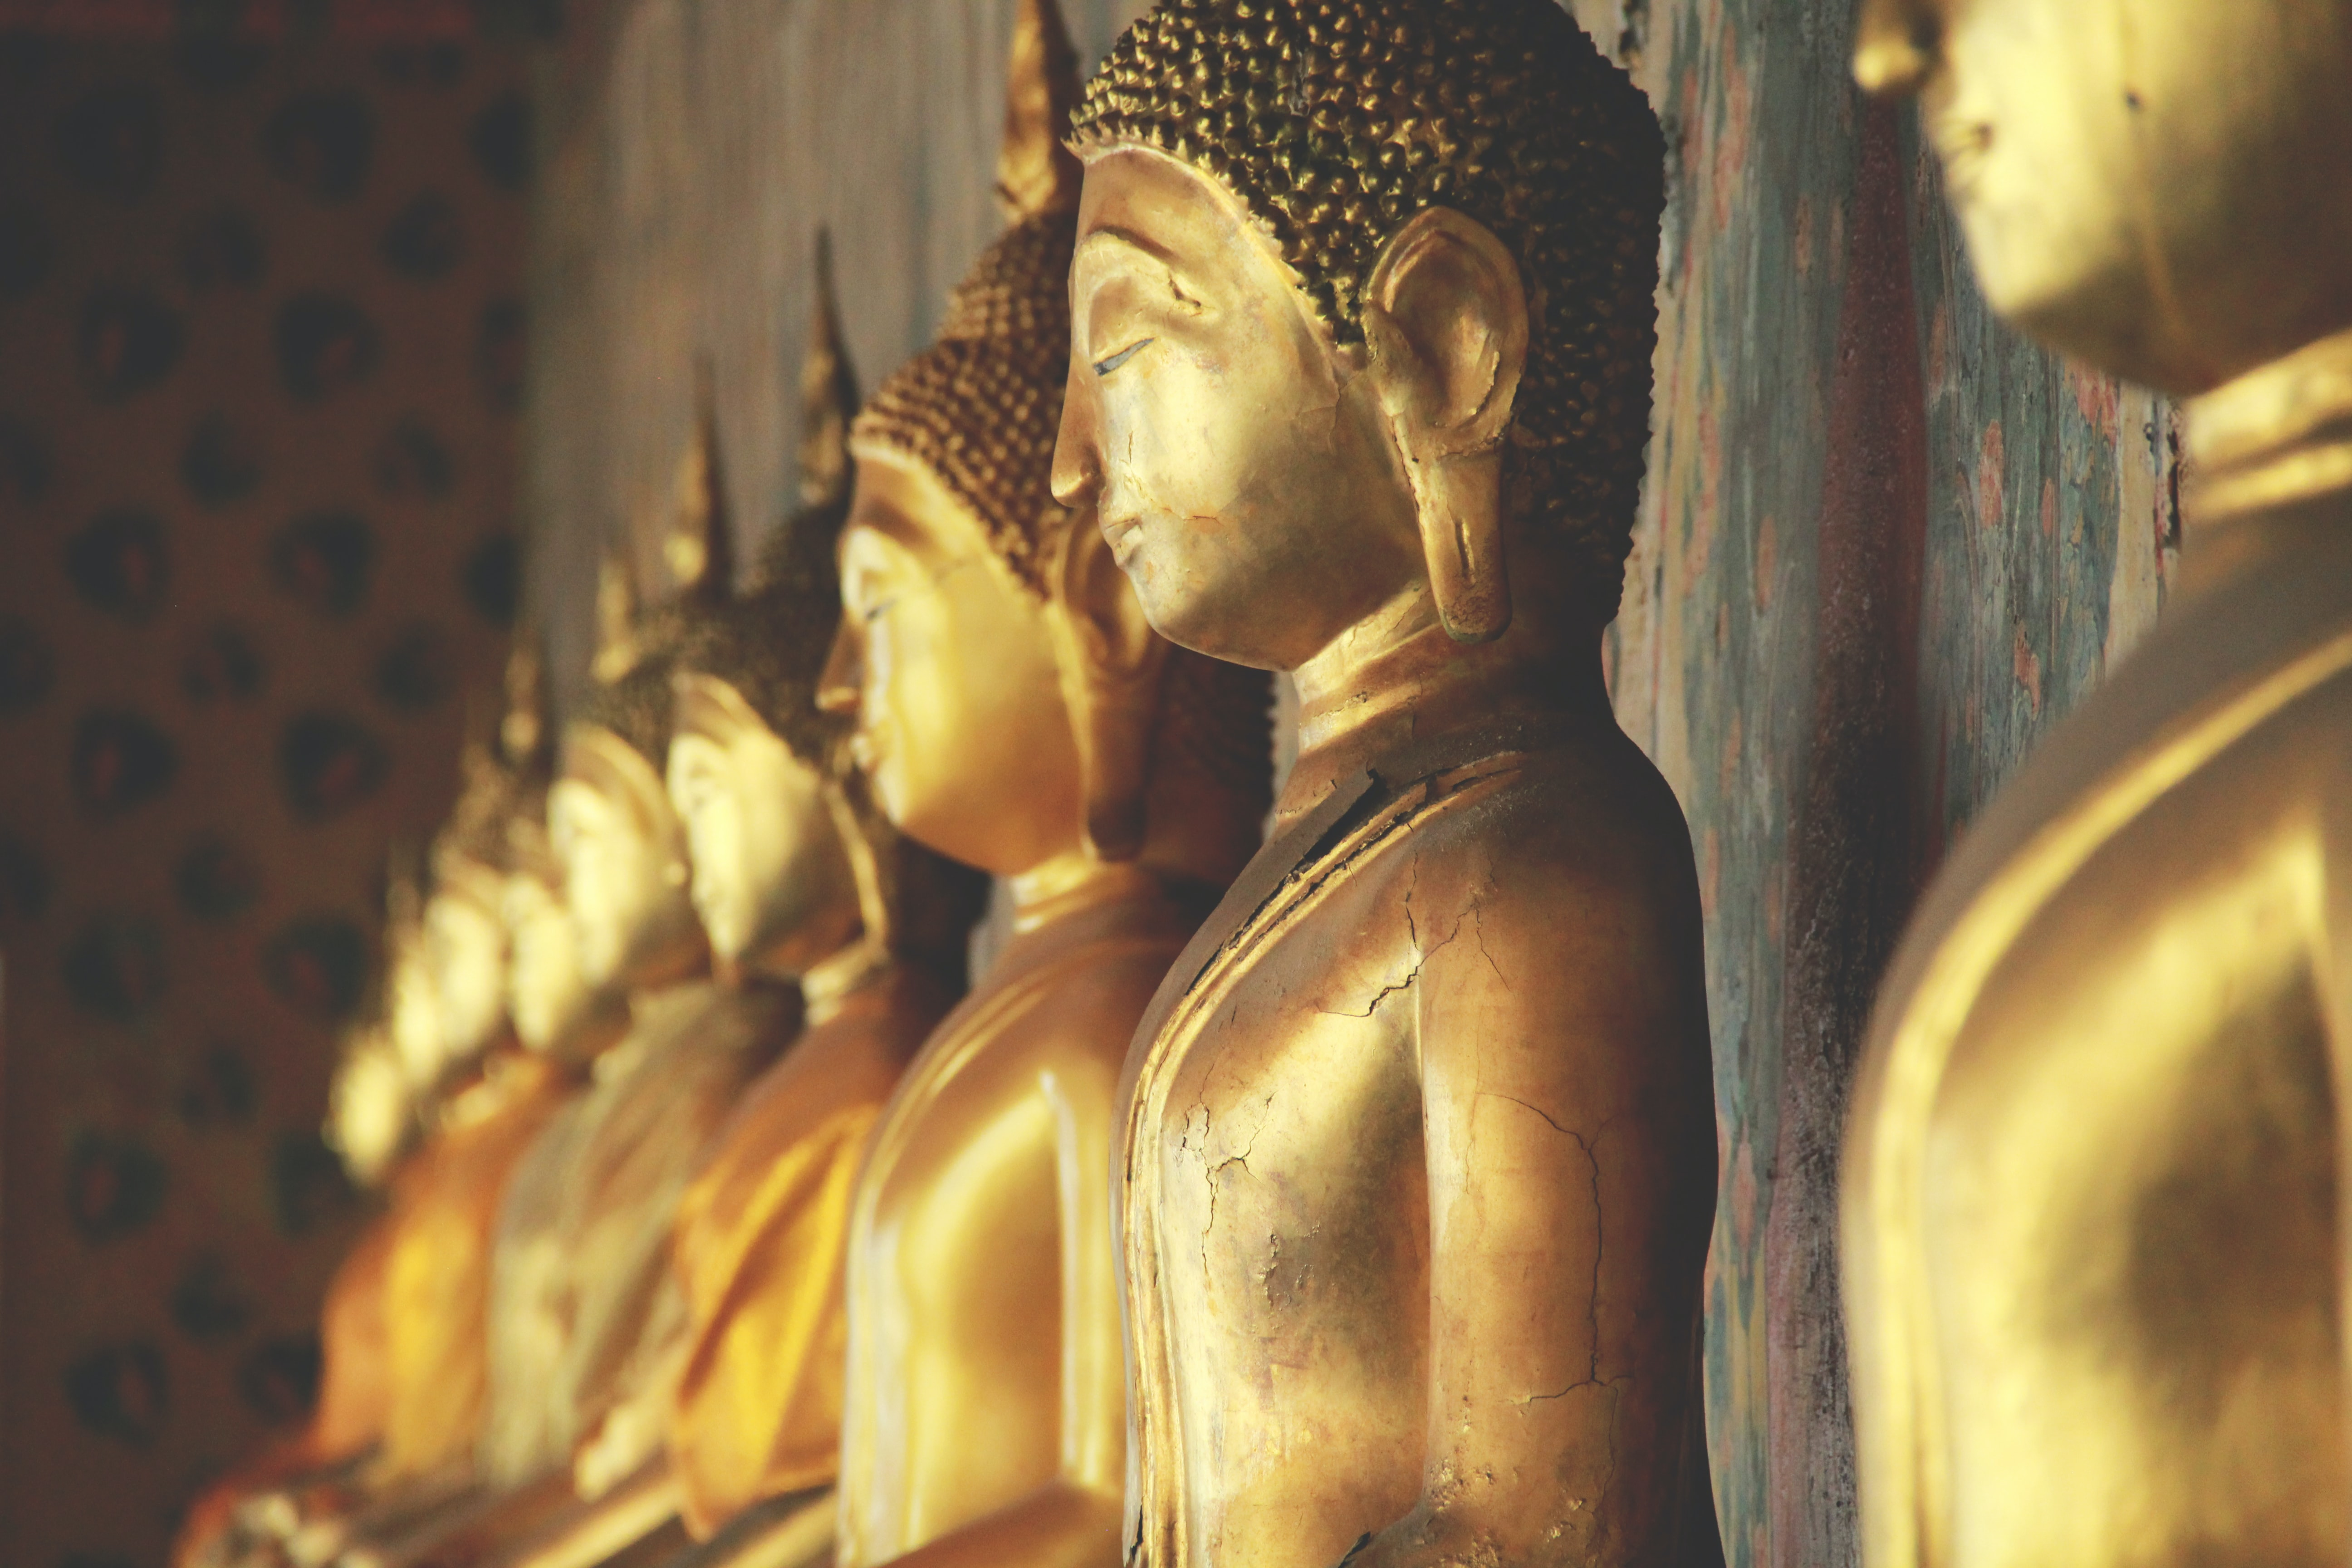 gold-colored Buddha statues